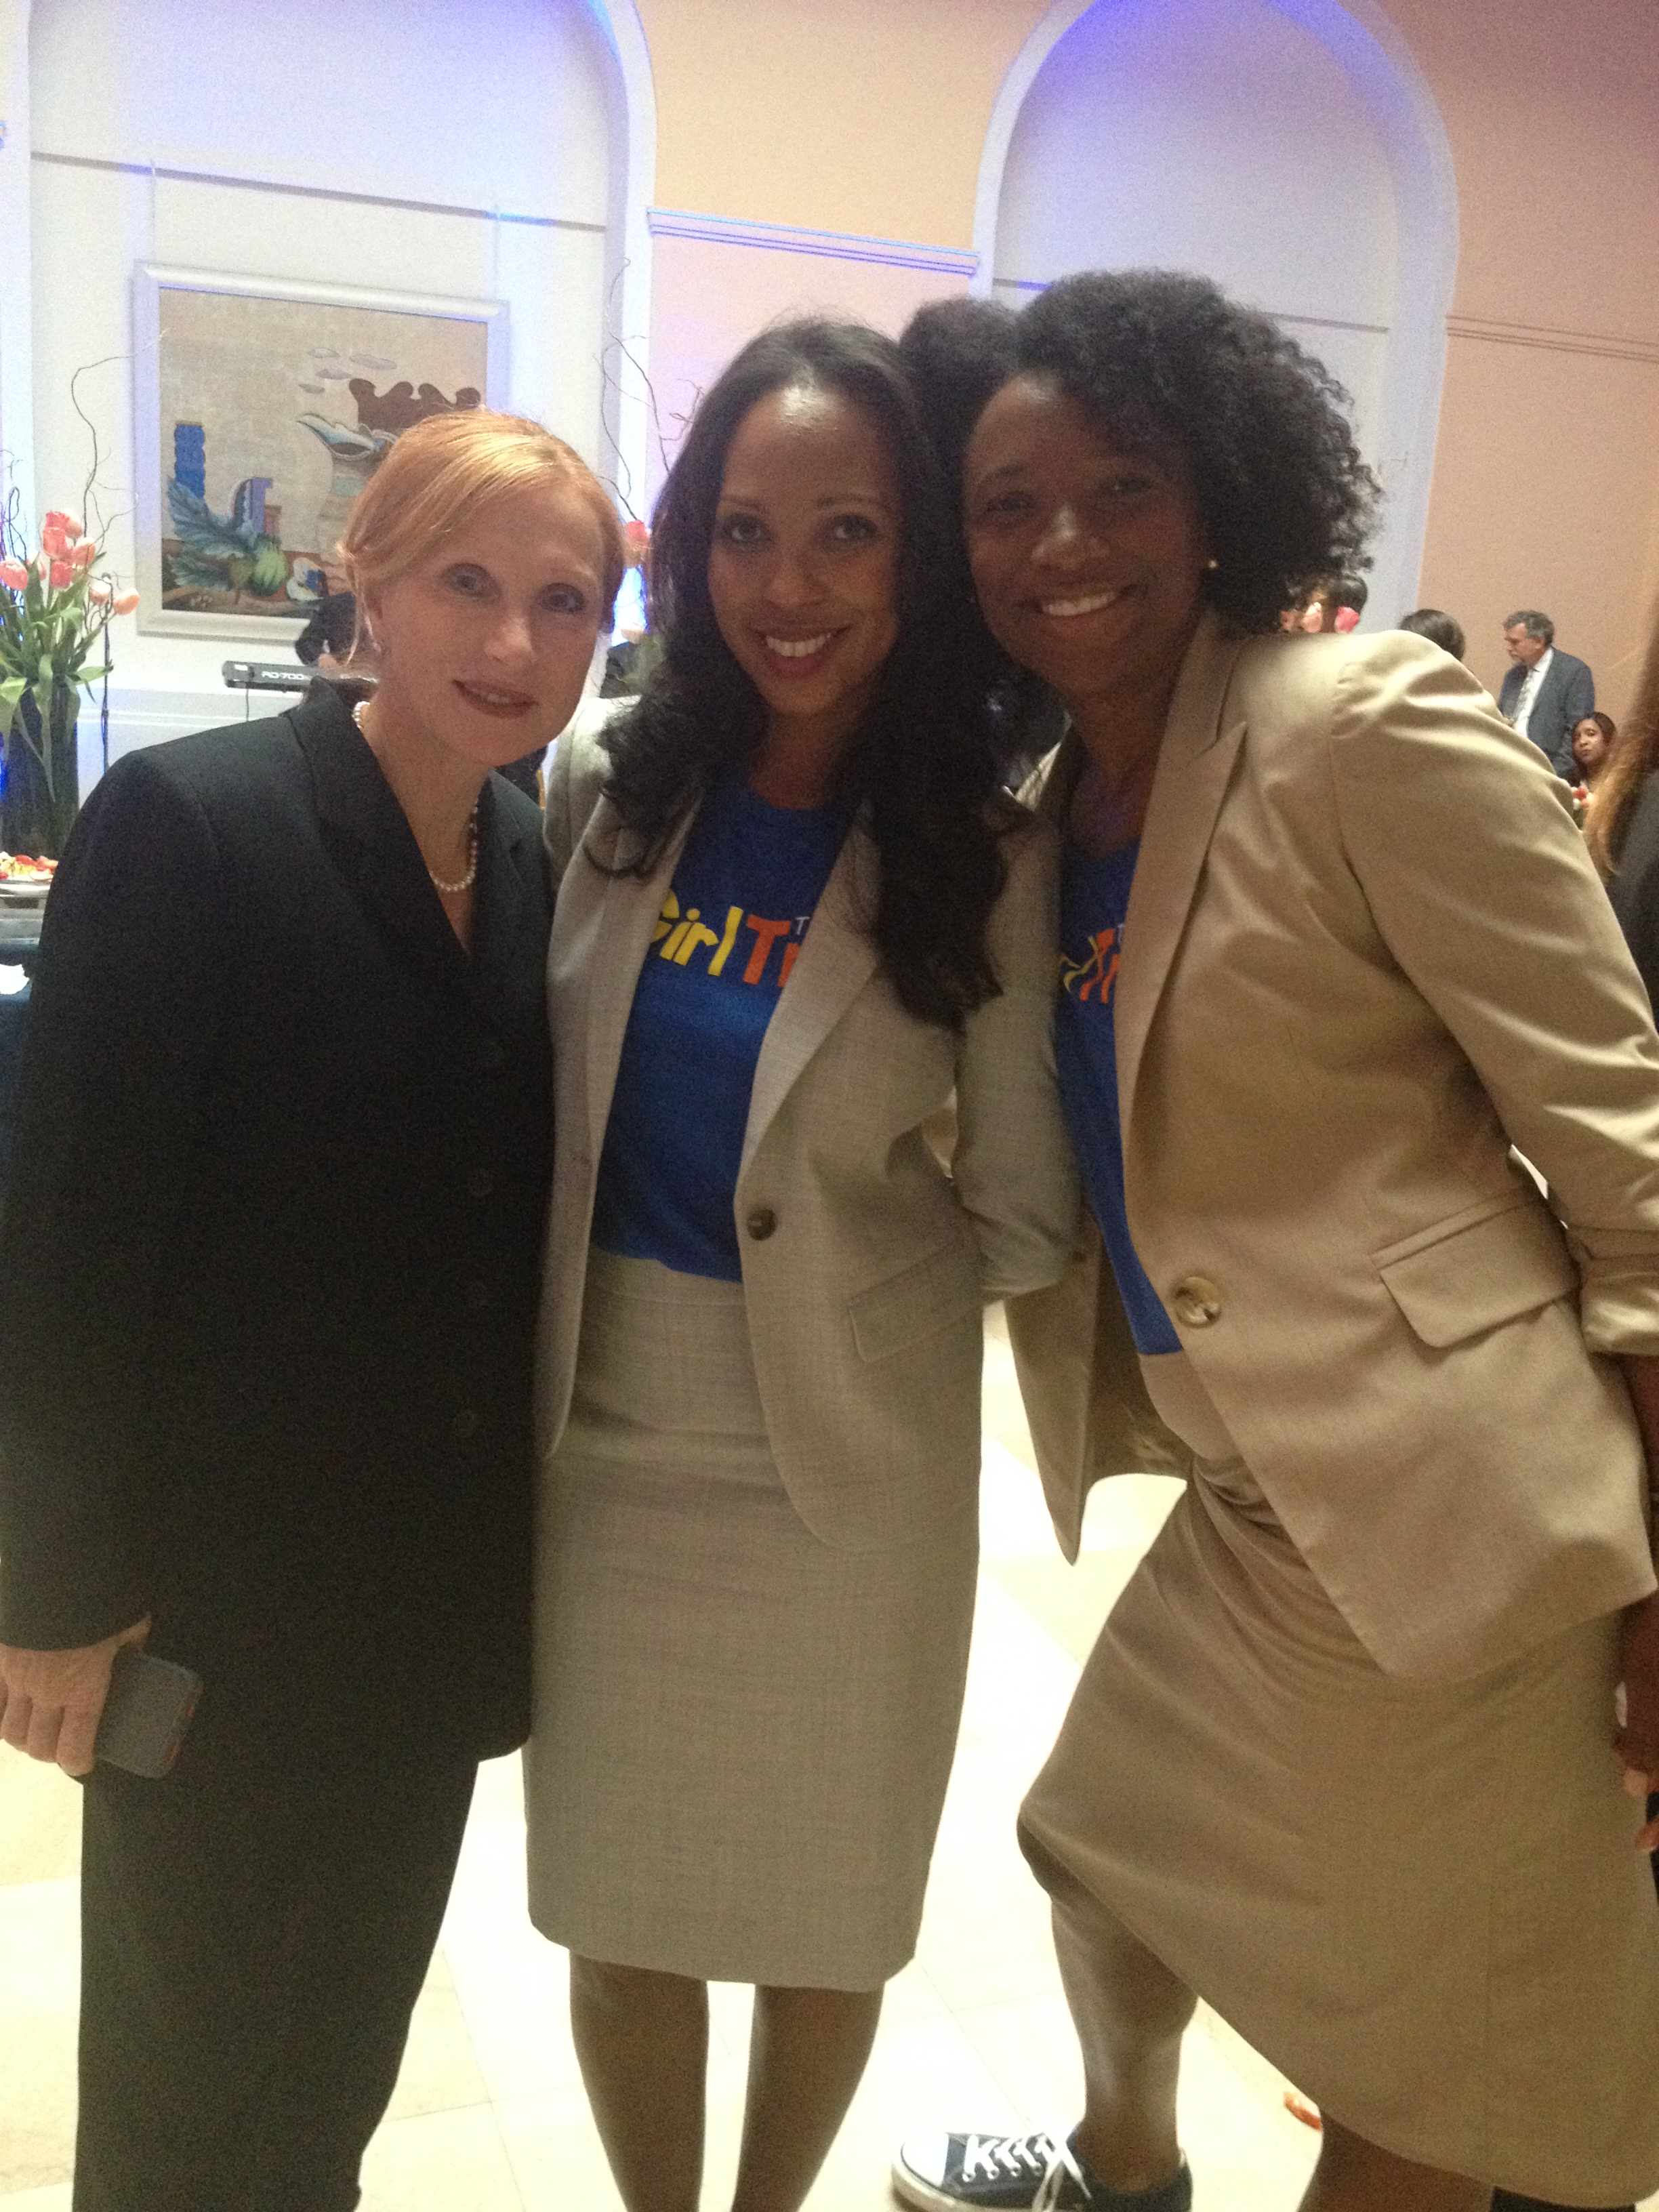 VIcki Crawford, Clinton Foundation with Vanessa Garrison and Morgan Dixon from Girl Trek in Newark for the Childhood Obesity Forum.